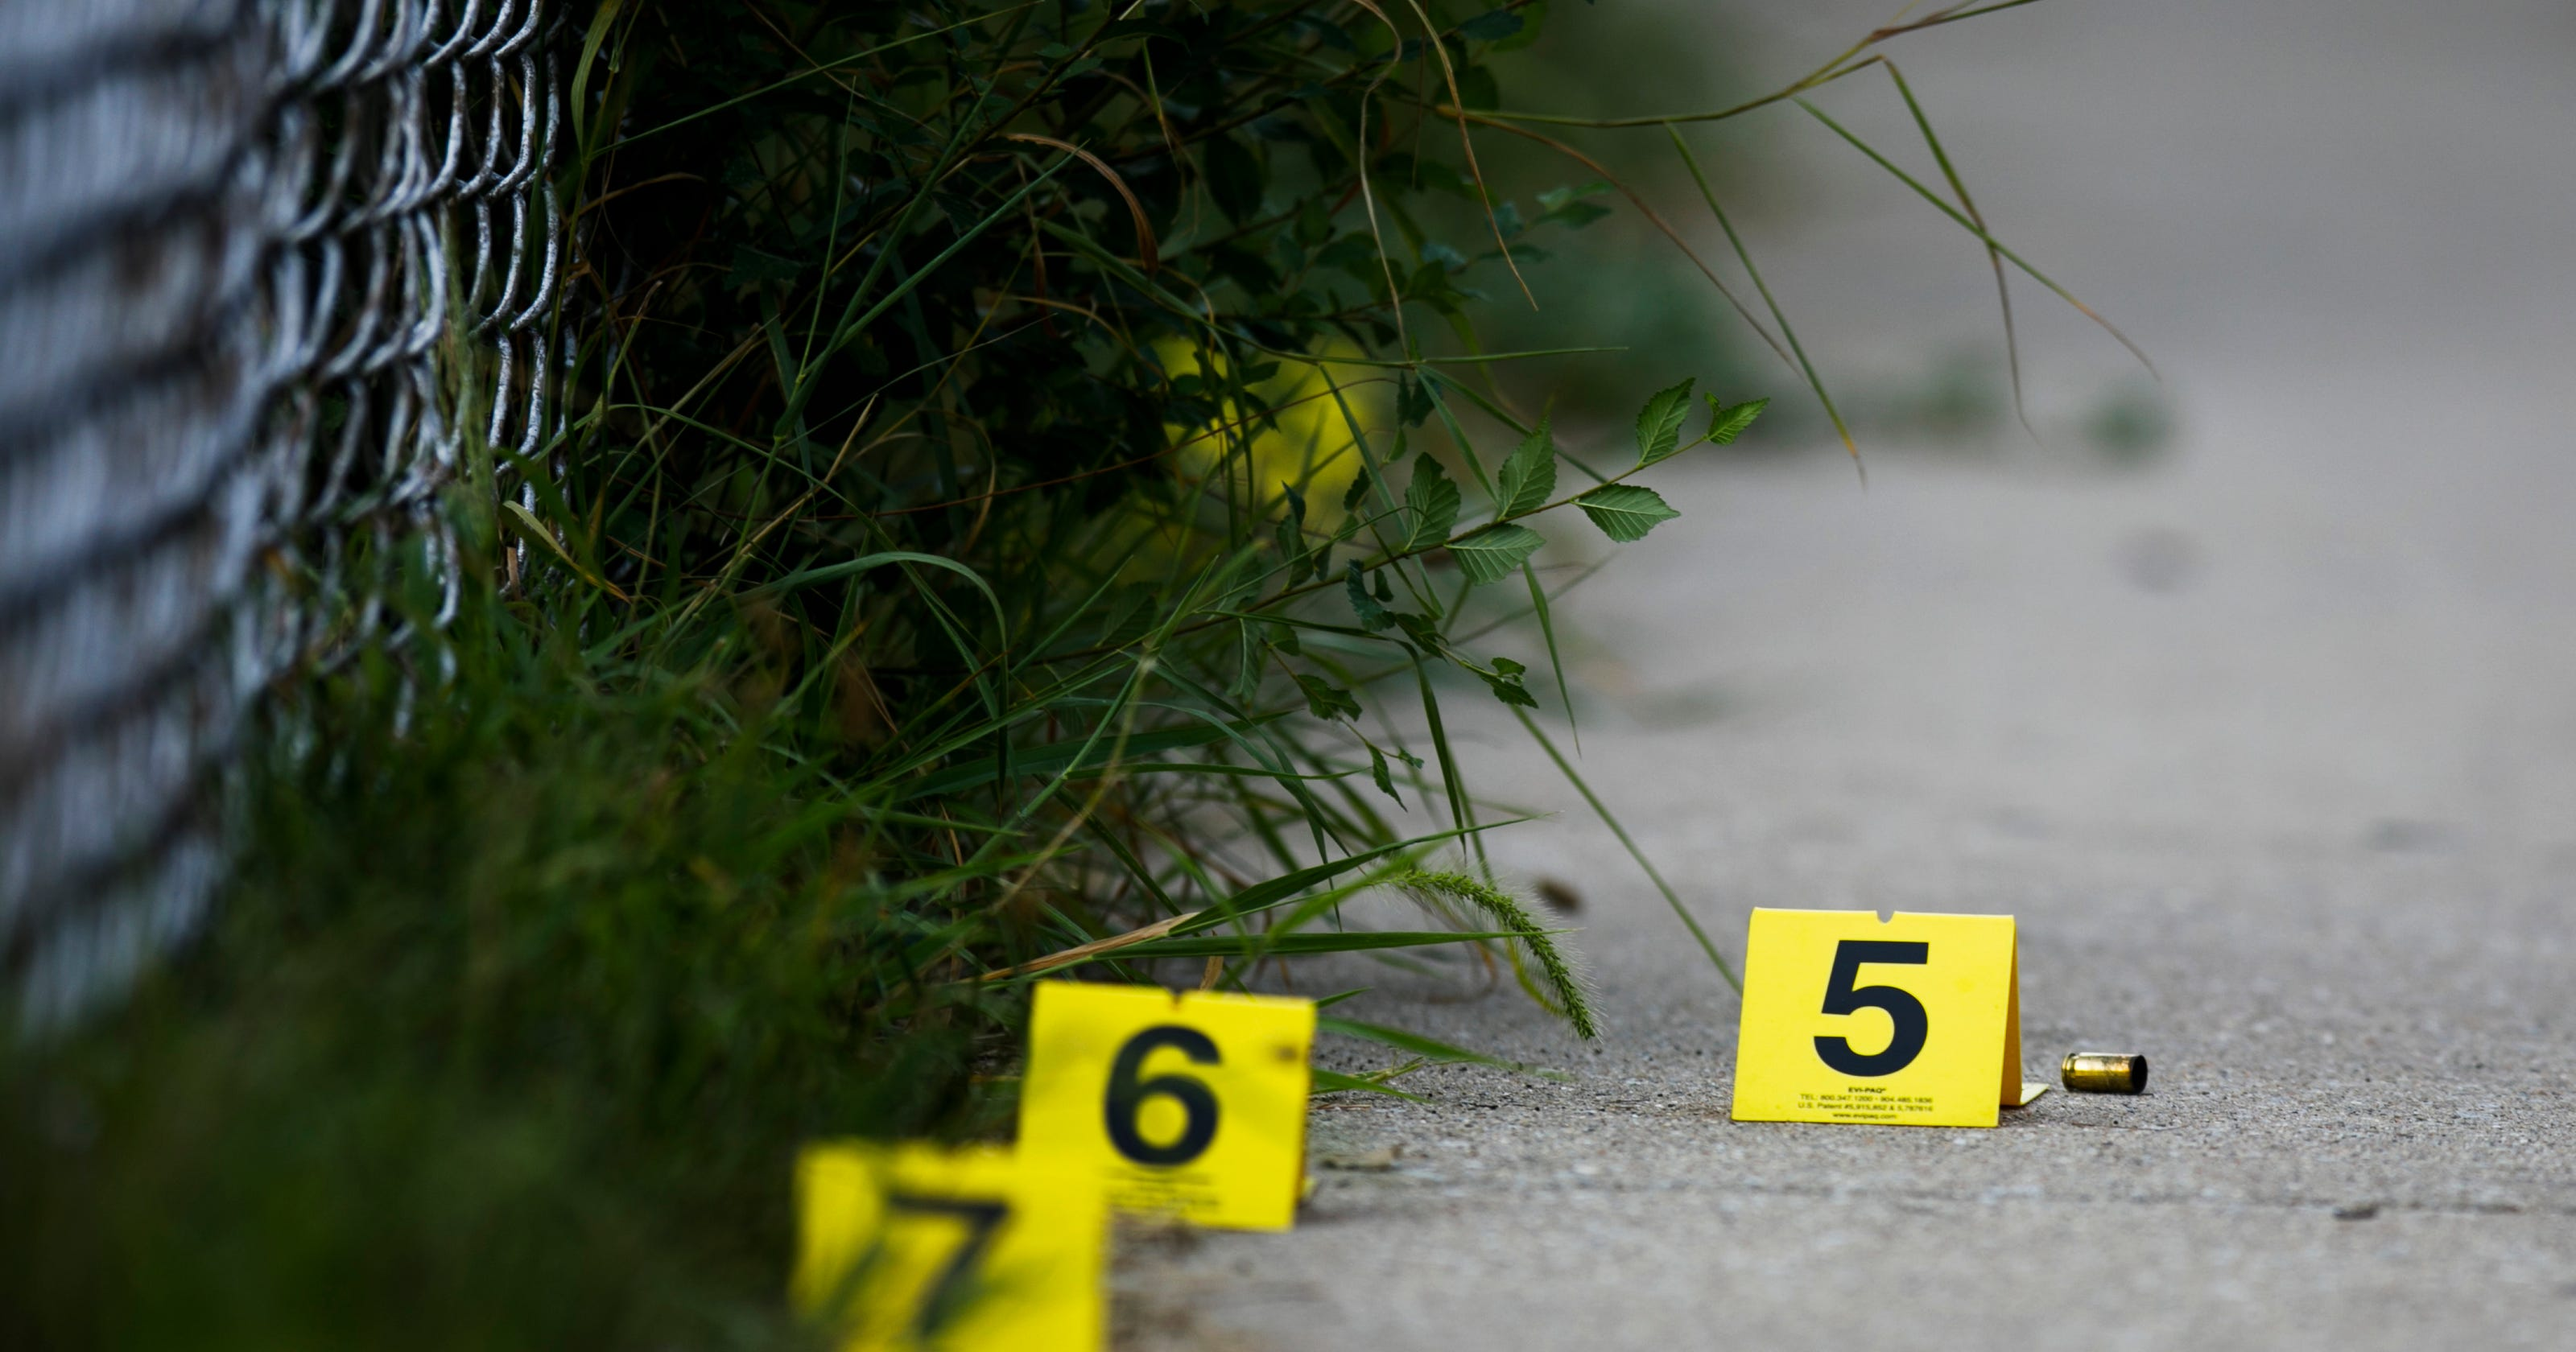 Chicago weekend shootings leave 72 shot, 13 dead over grim three days